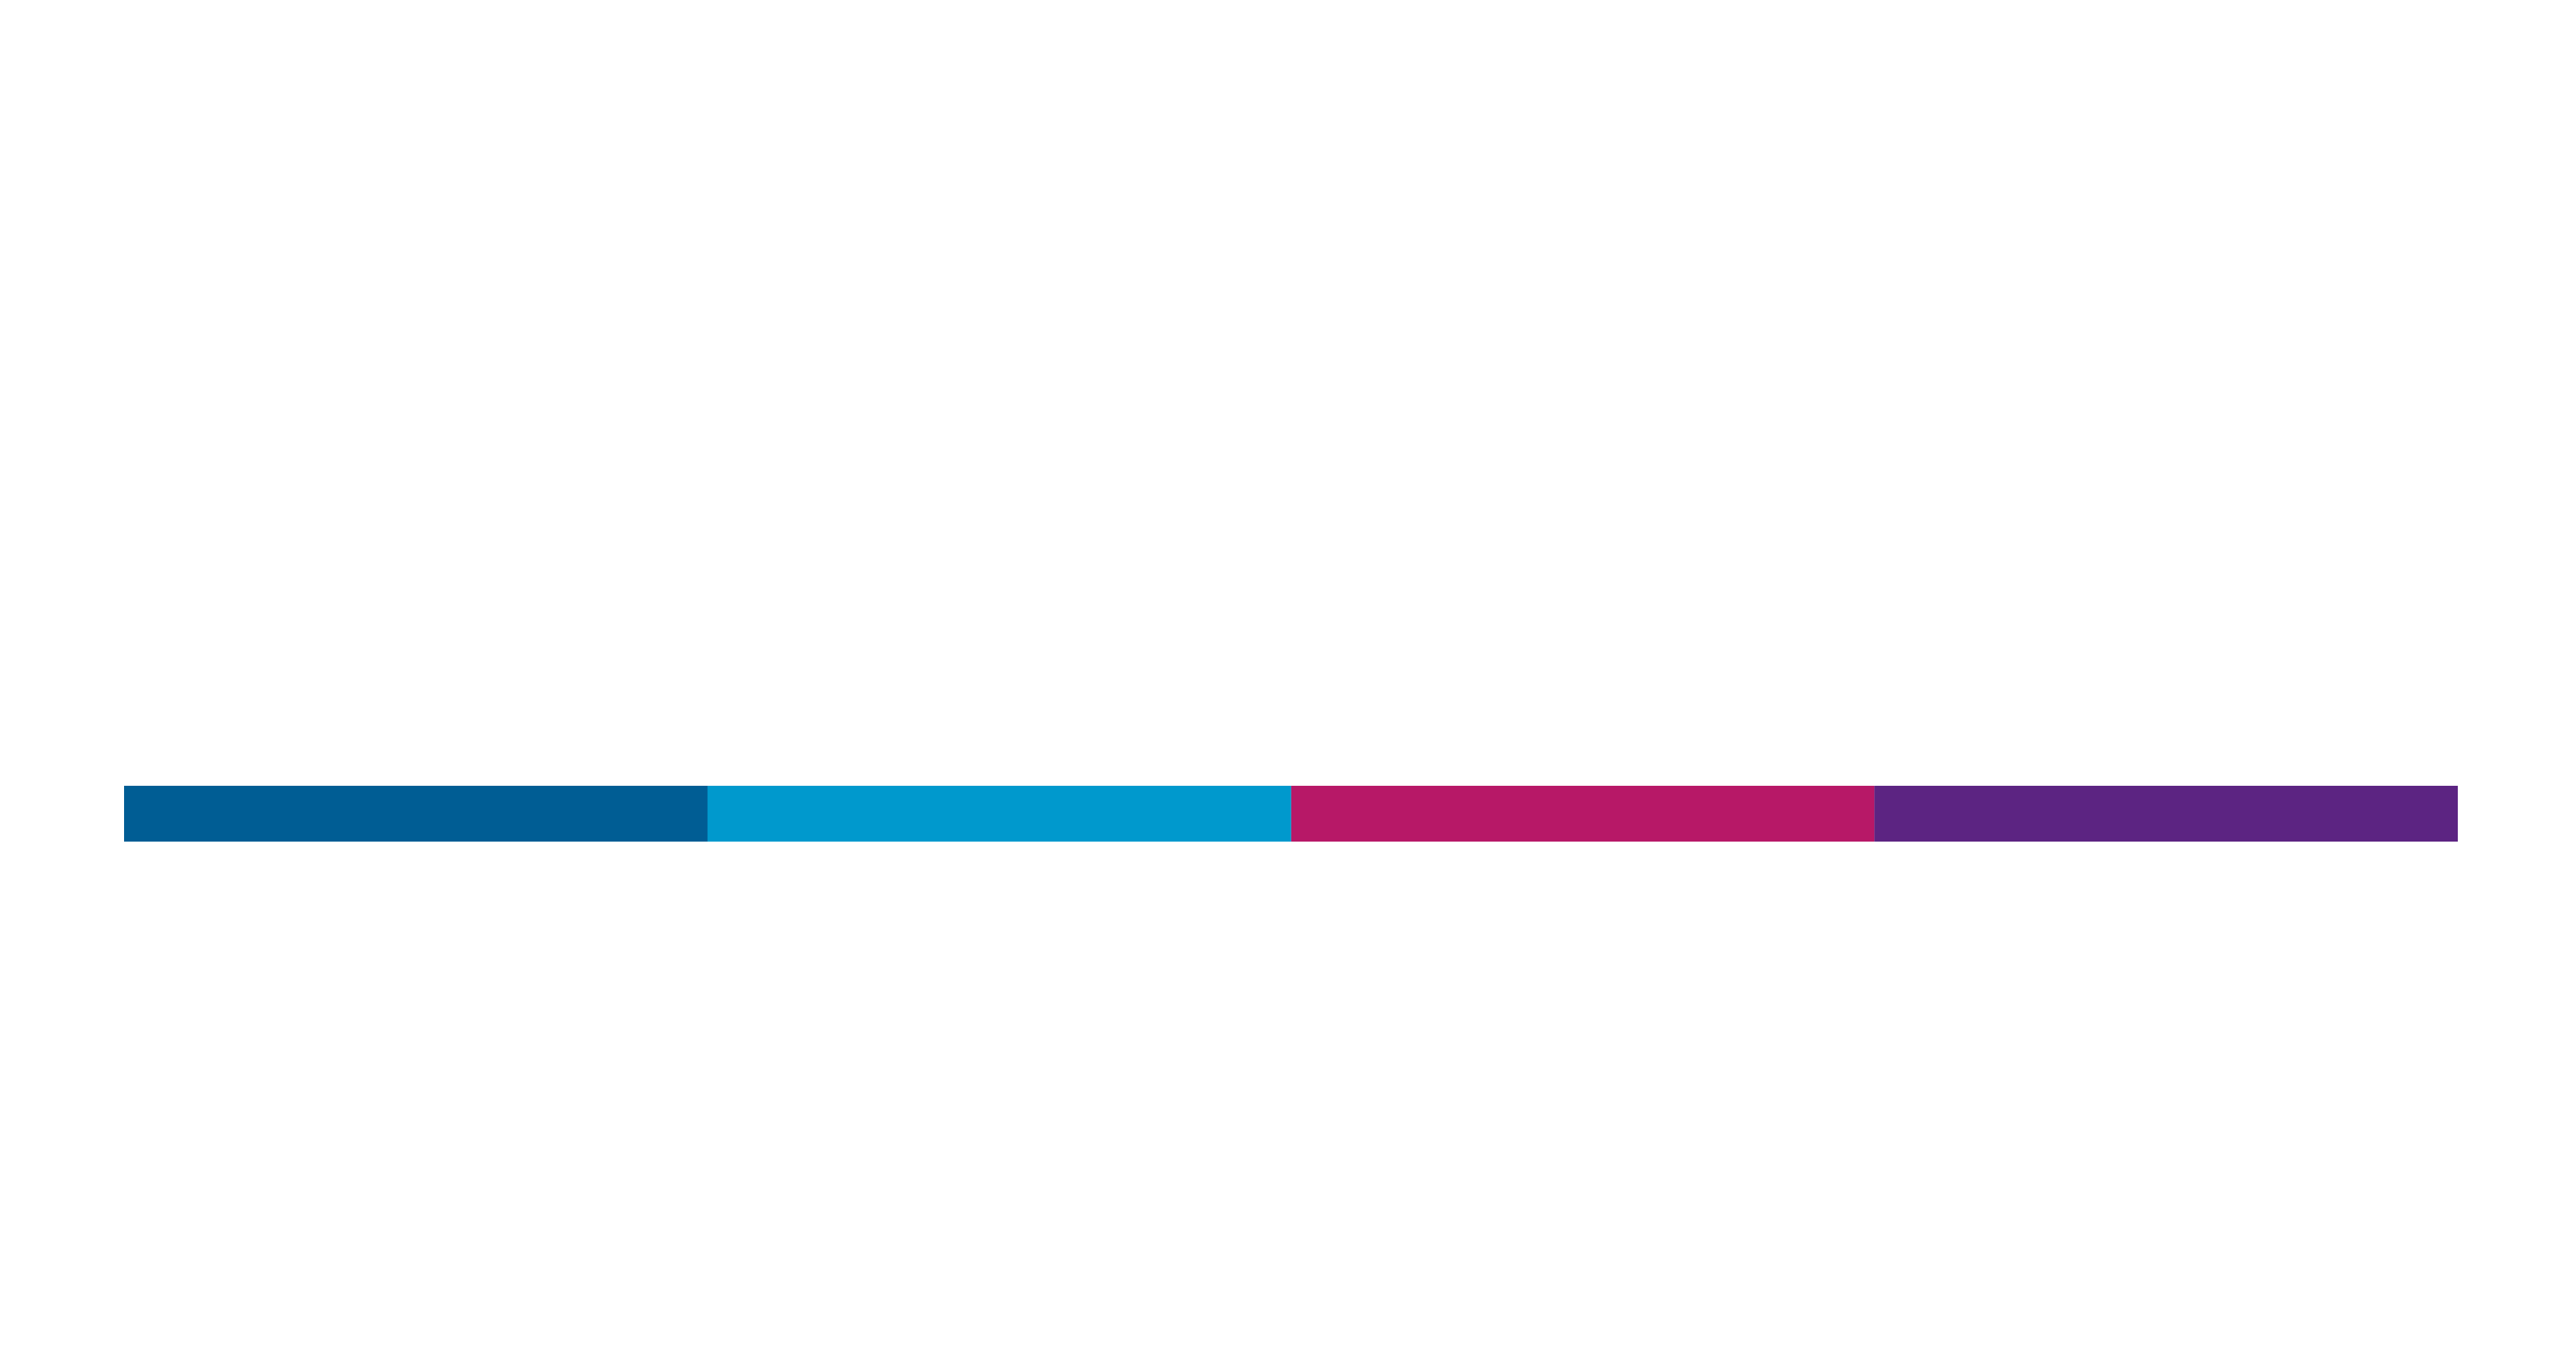 GovNet-Events-RGB-Logo-White-Colour-Bar-Large